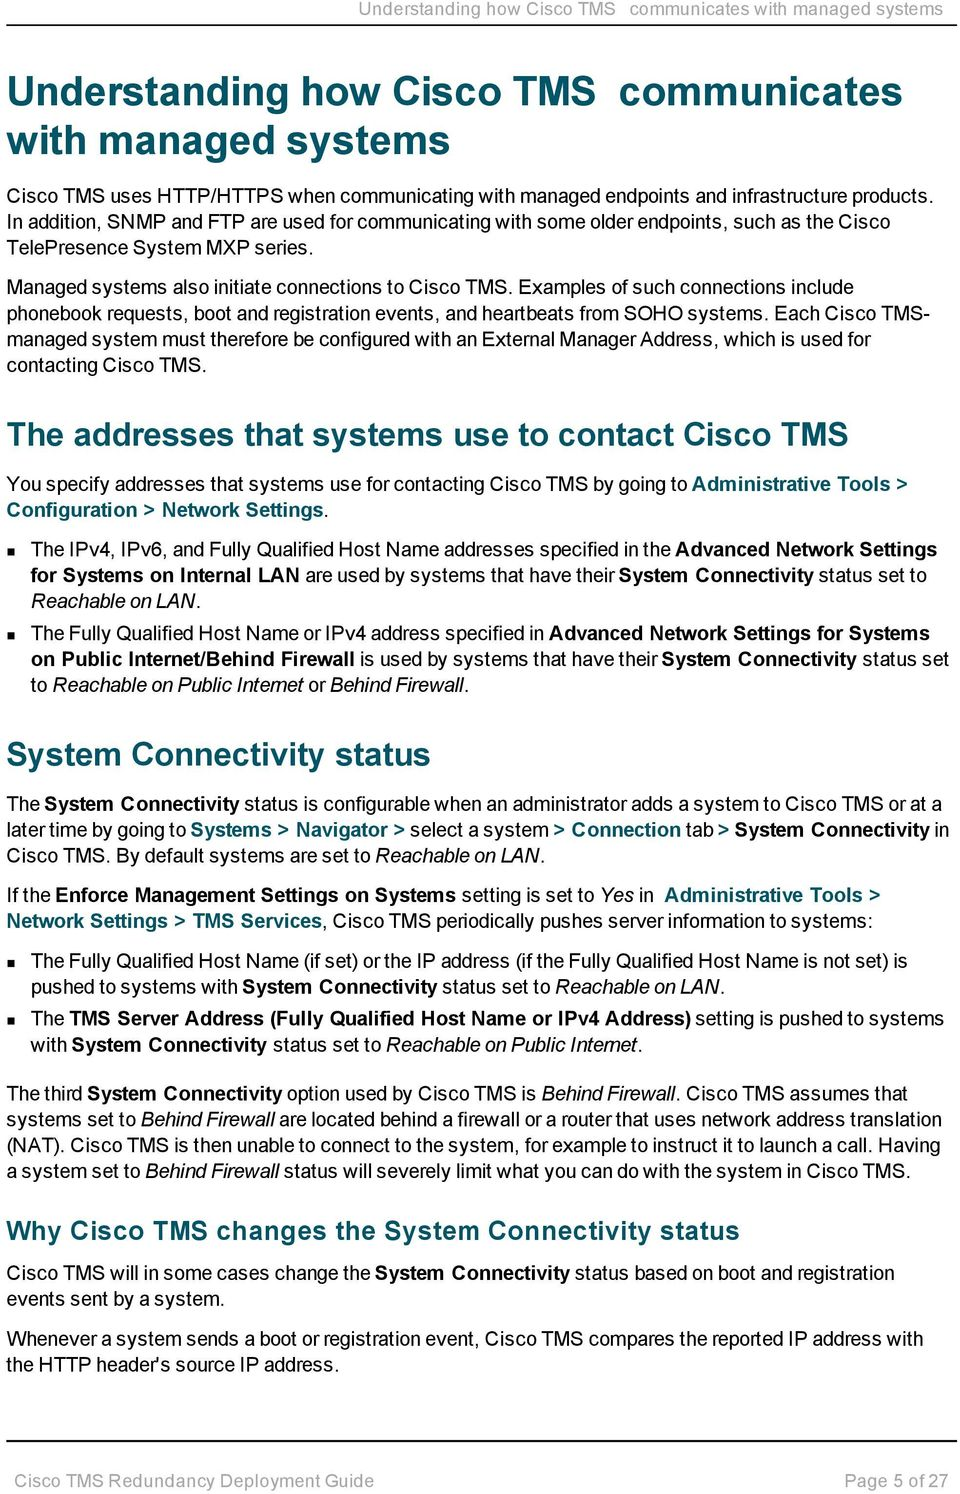 Managed systems also initiate connections to Cisco TMS. Examples of such connections include phonebook requests, boot and registration events, and heartbeats from SOHO systems.